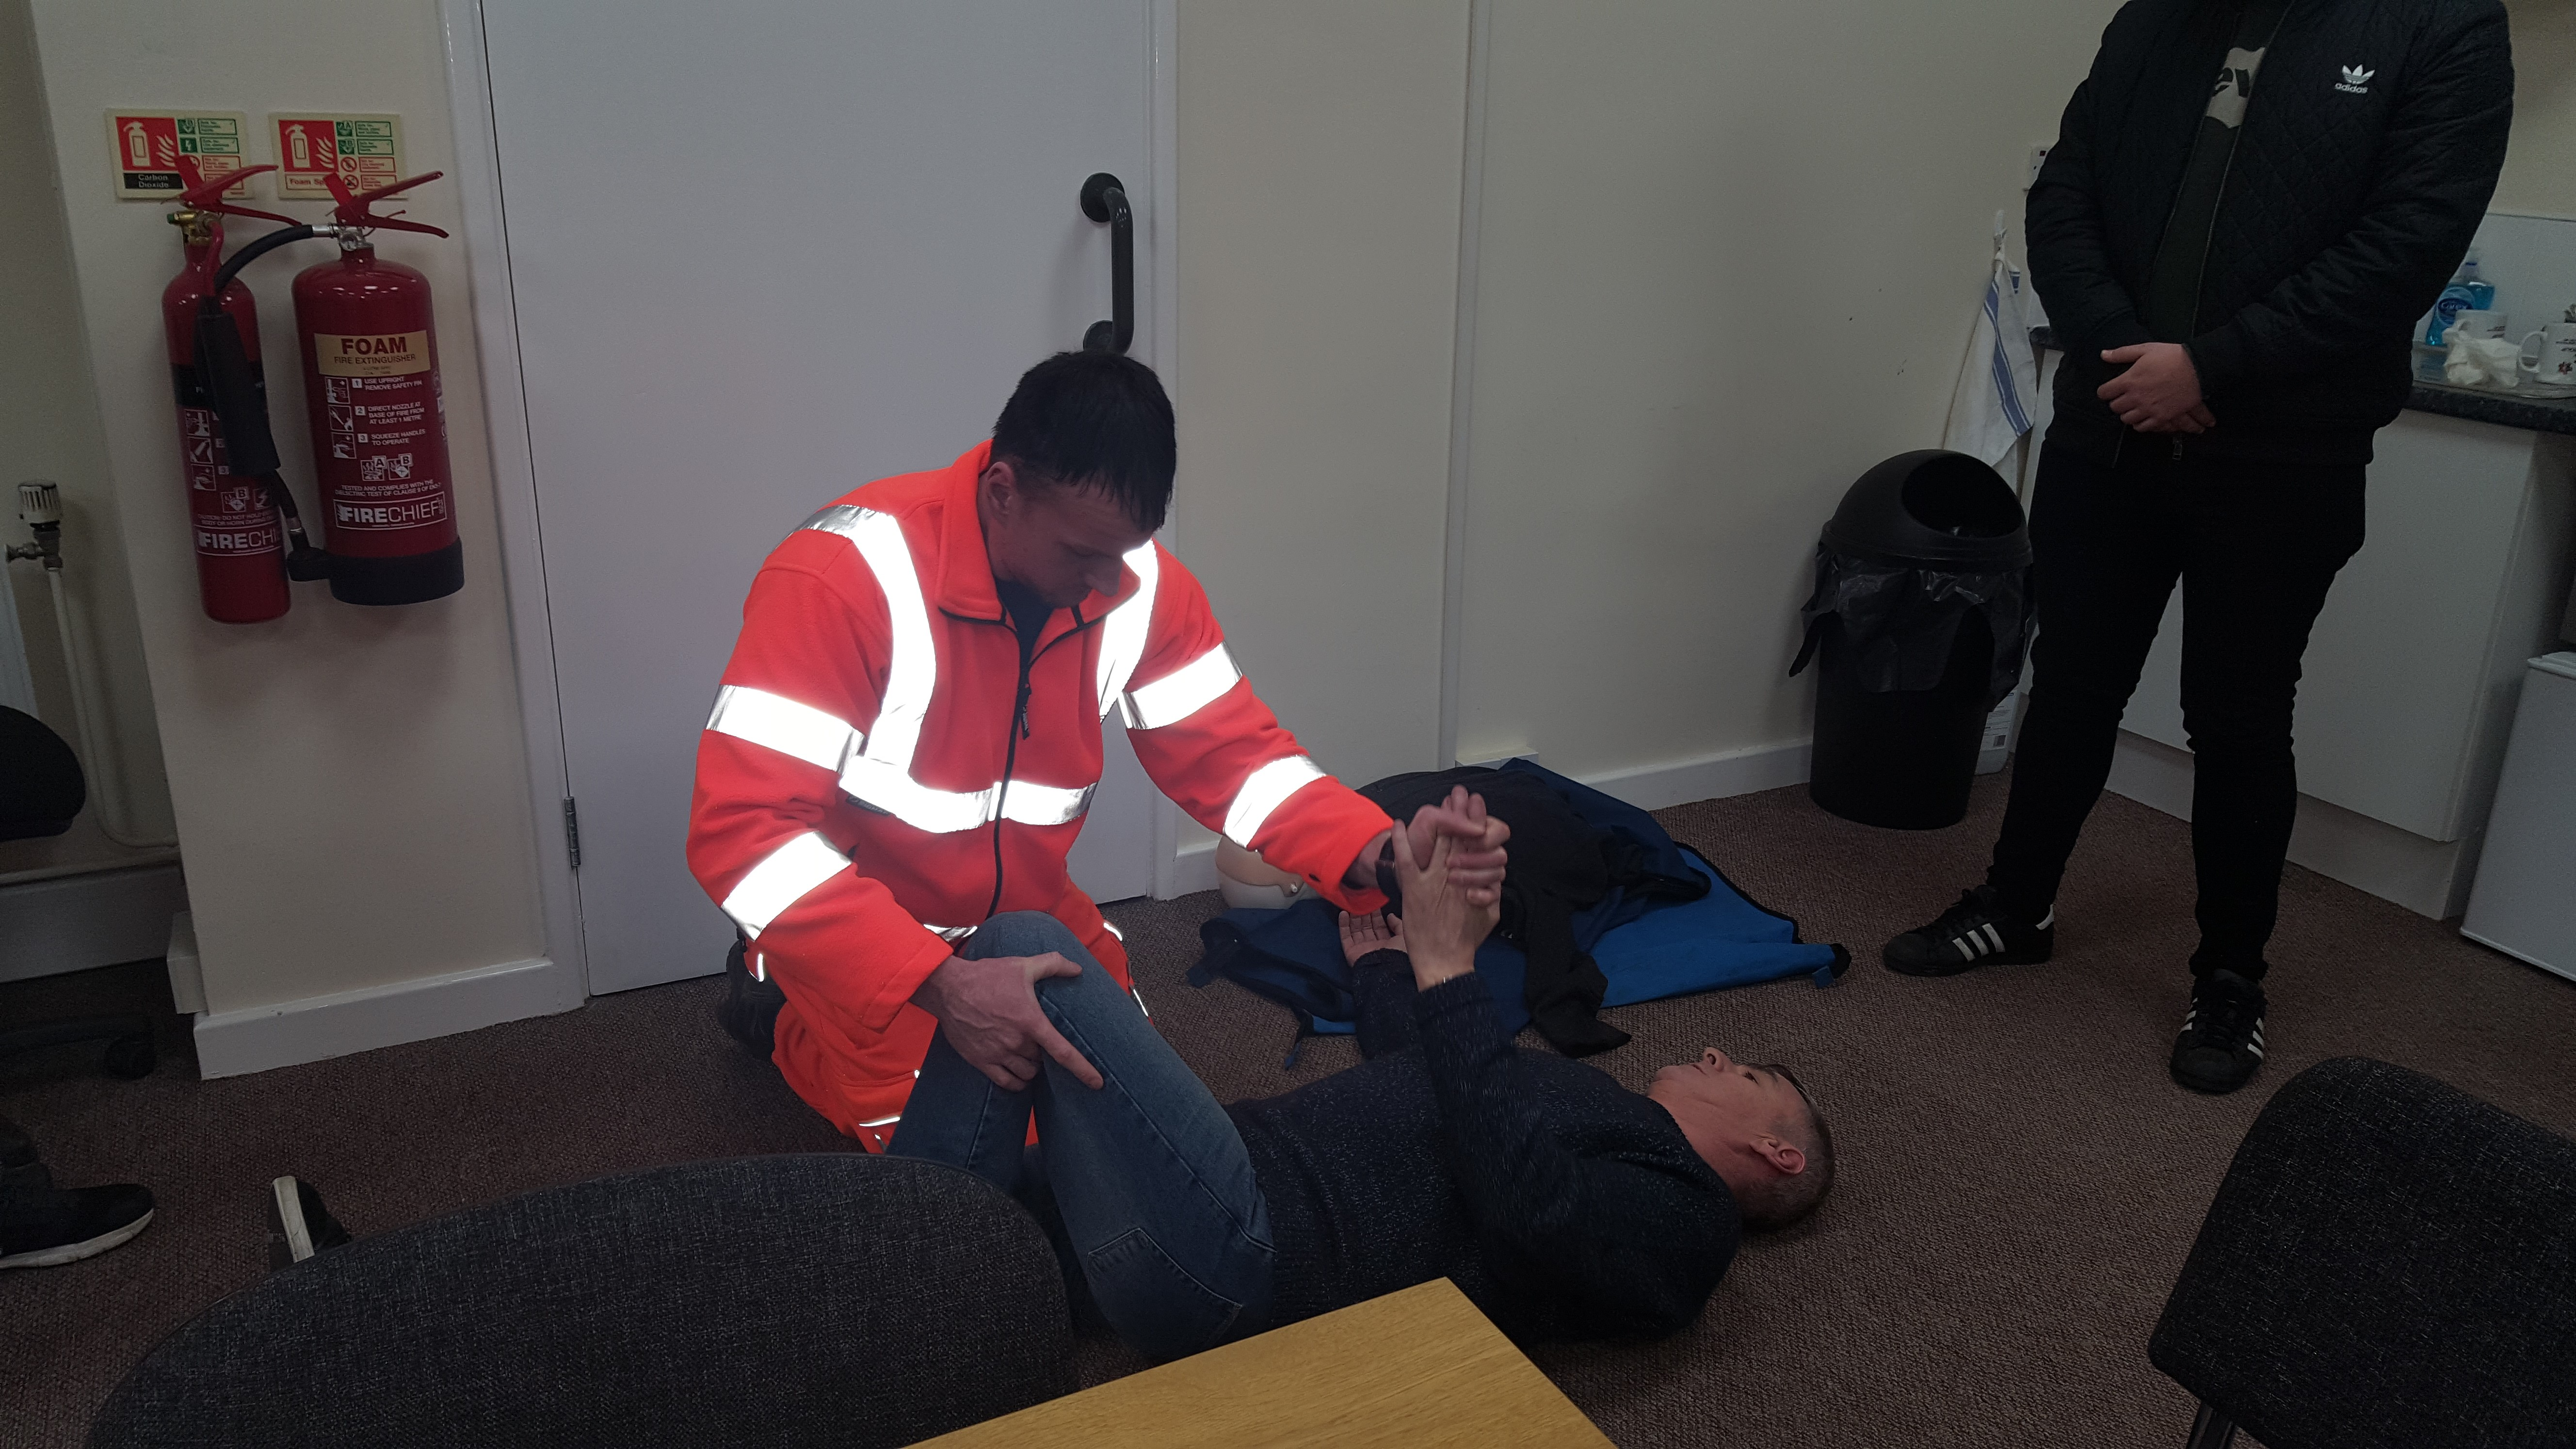 First aid at Work Courses Manchester